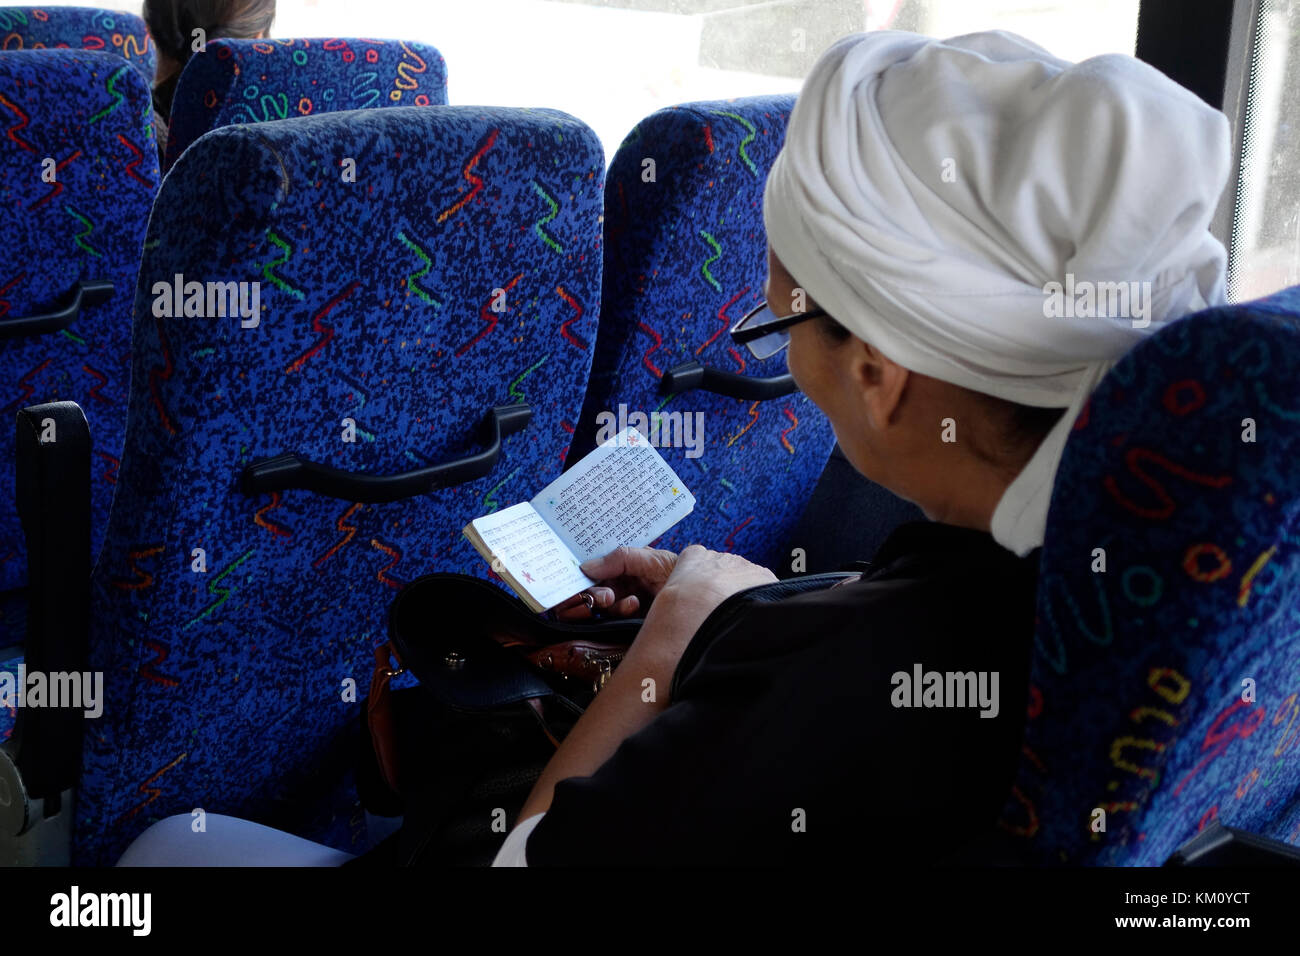 A religious Jewish woman reading a Jewish daily prayer book in Hebrew in a bus in Israel - Stock Image